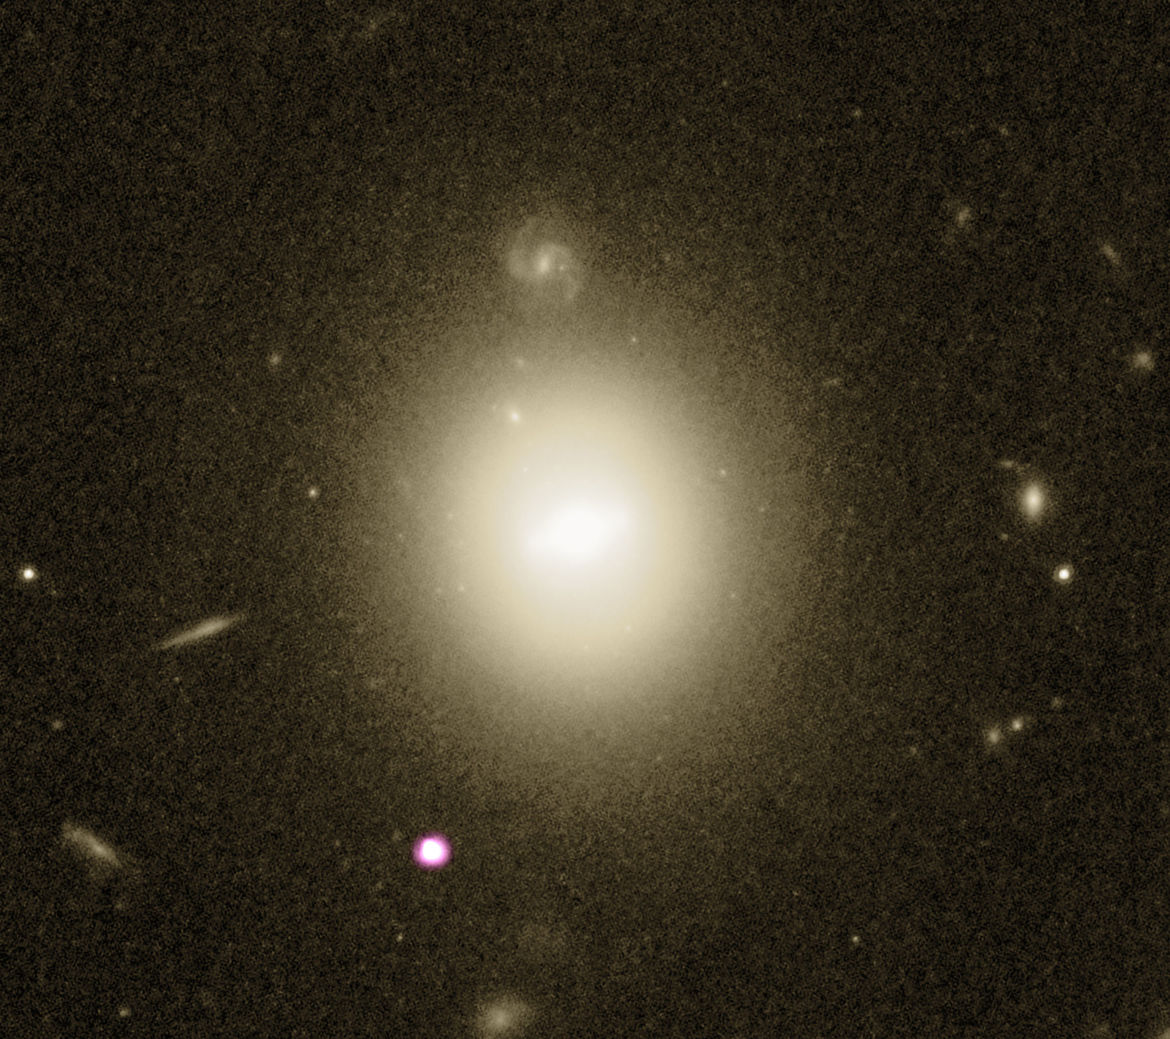 A Hubble observation of the galaxy 6dFGS gJ215022.2-055059 (the large fuzzy object centered) from 2003 showed a blob, likely a star cluster or core of another galaxy, near its own core.